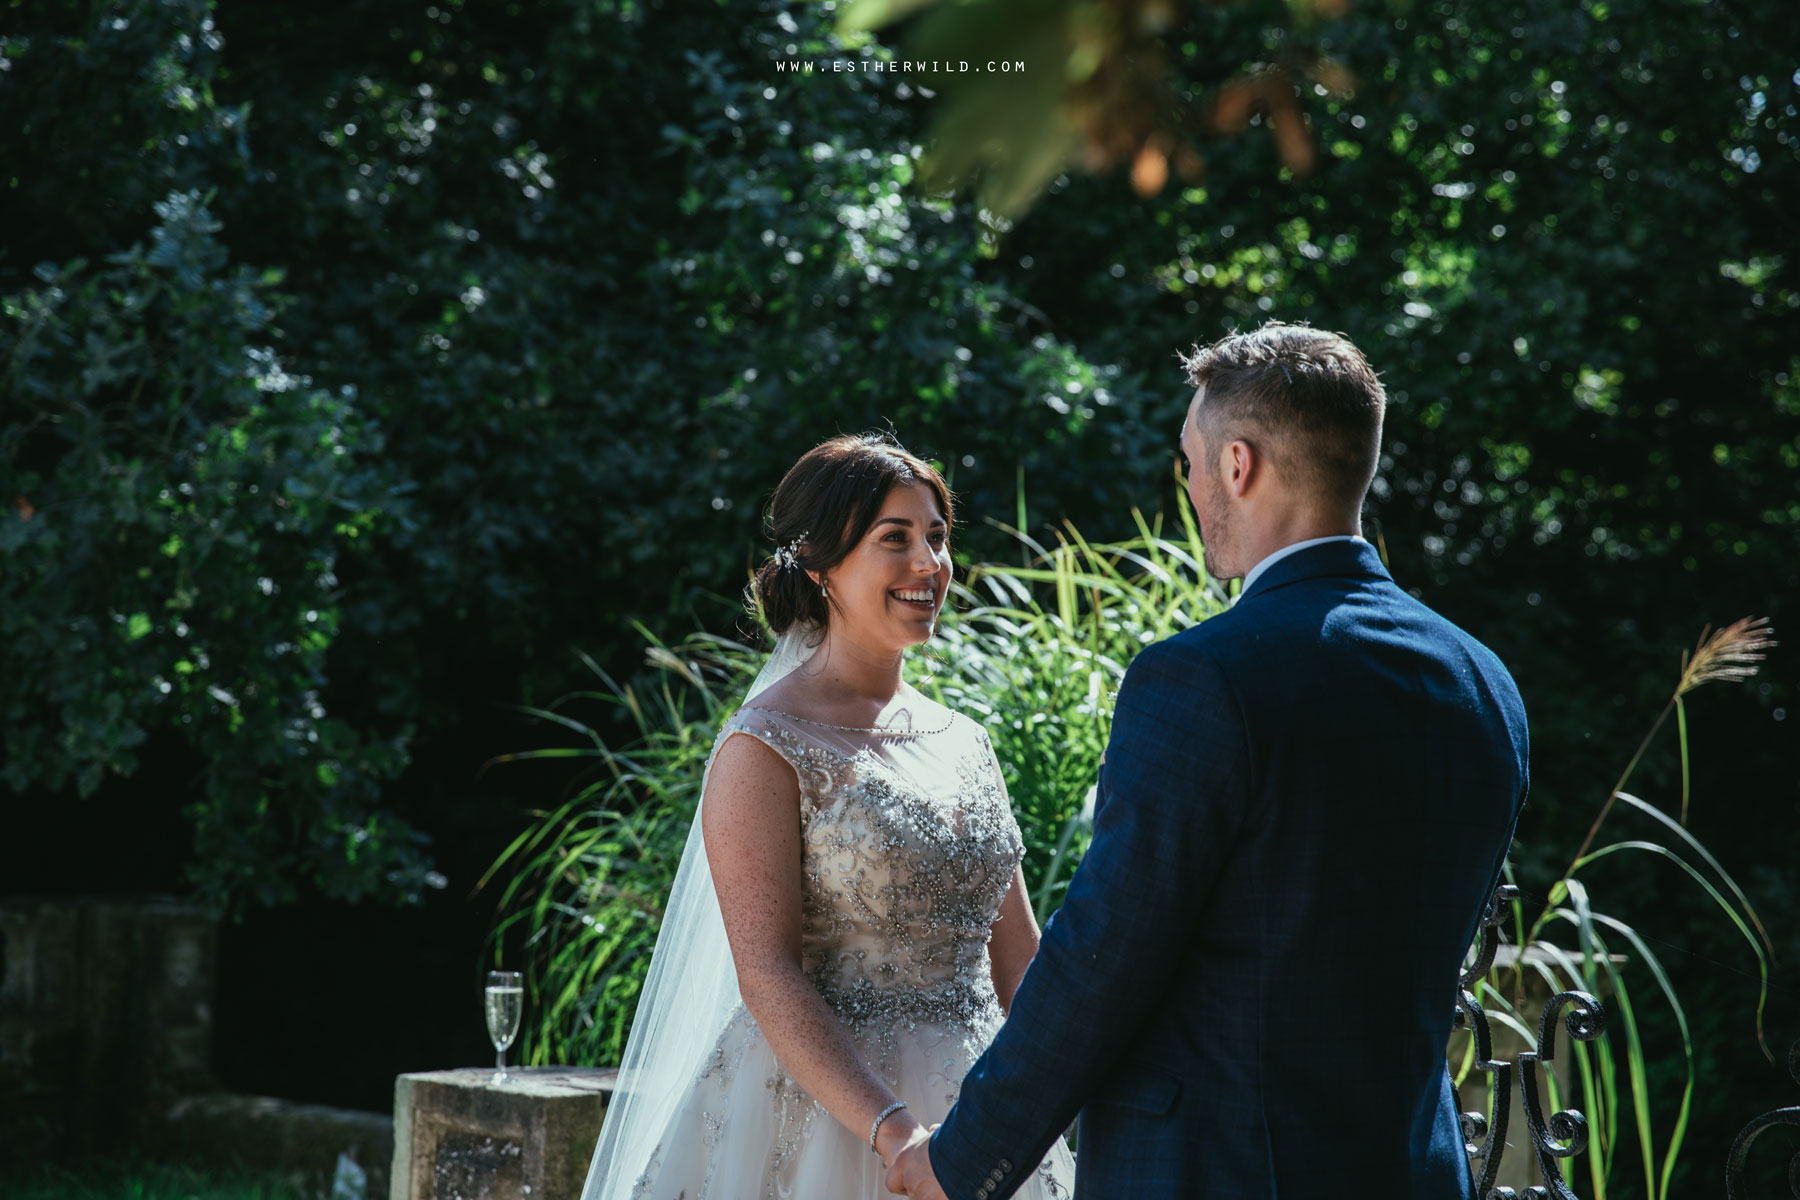 Lynford_Hall_Wedding_Thetford_Mundford_Esther_Wild_Photographer_IMG_1693.jpg